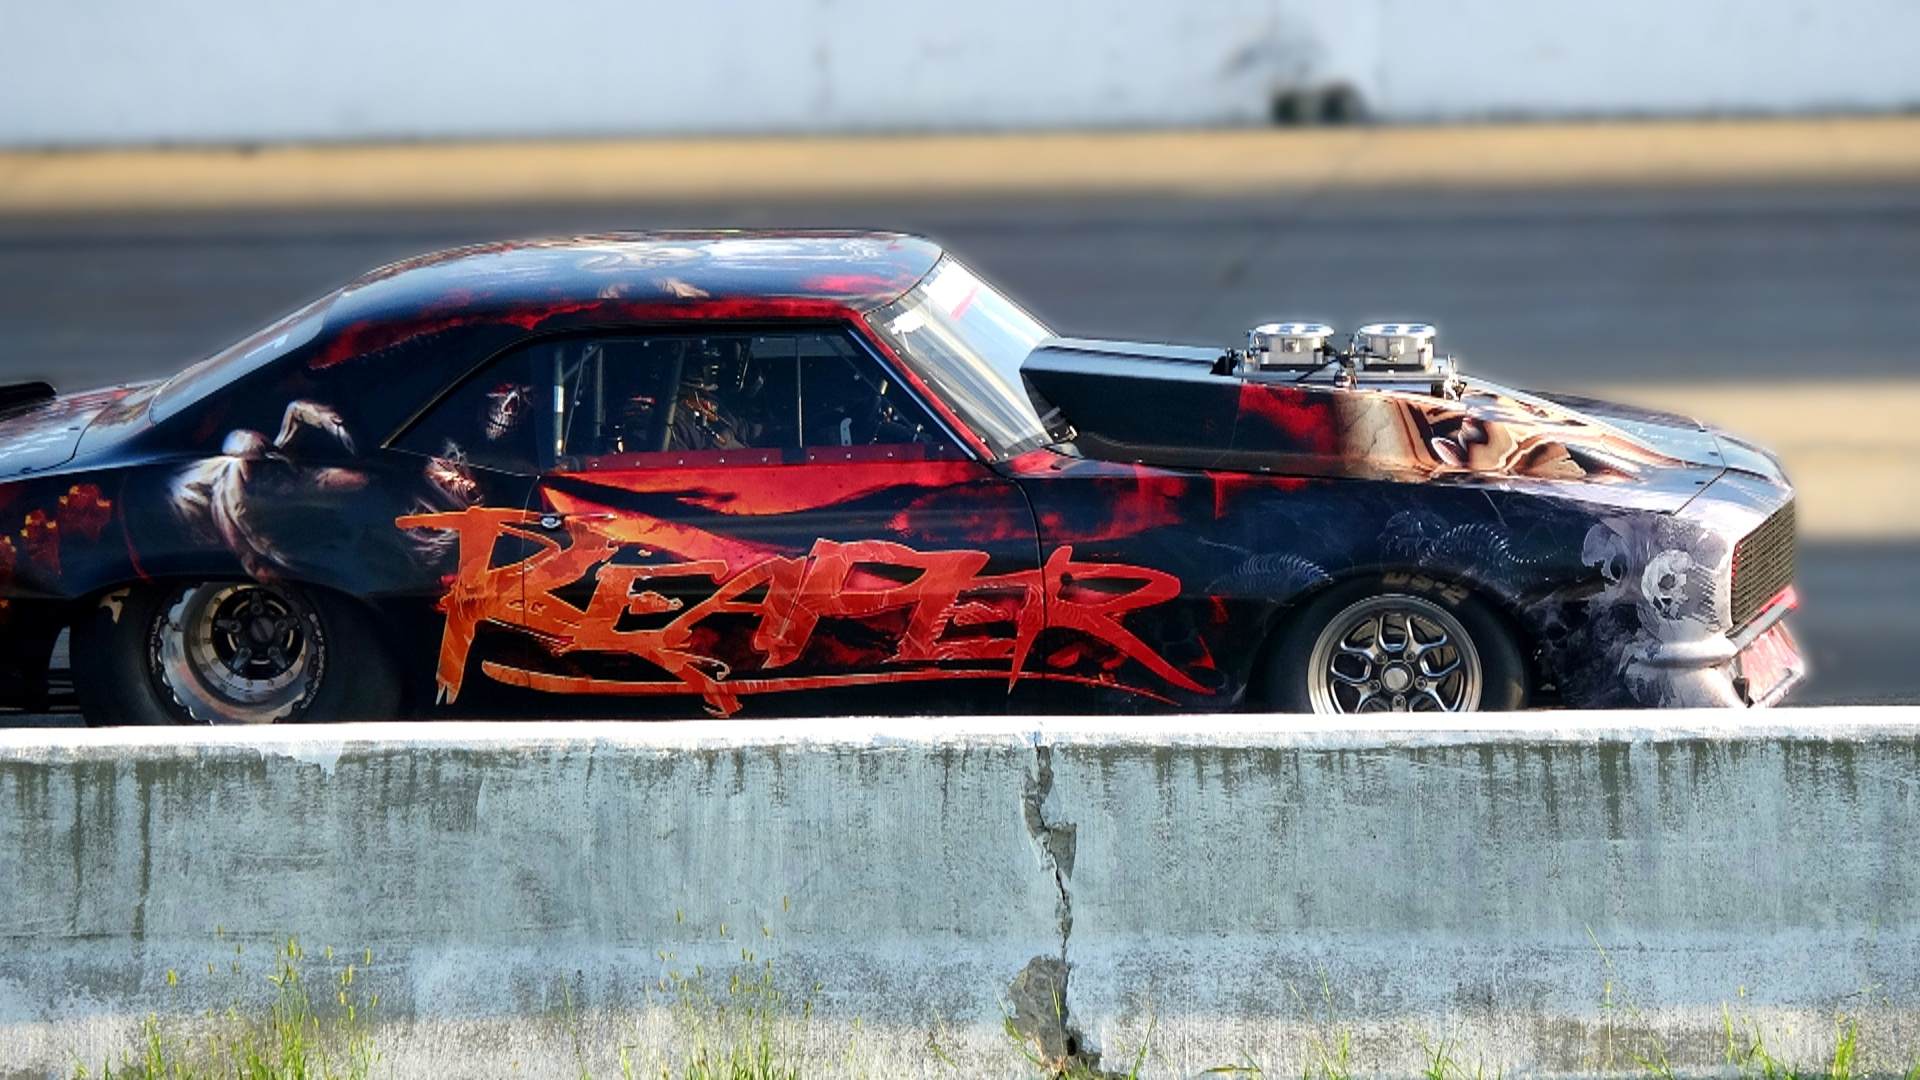 Street Outlaws Outlaw Armageddon The Third Assault: Chuck, Dominator ...